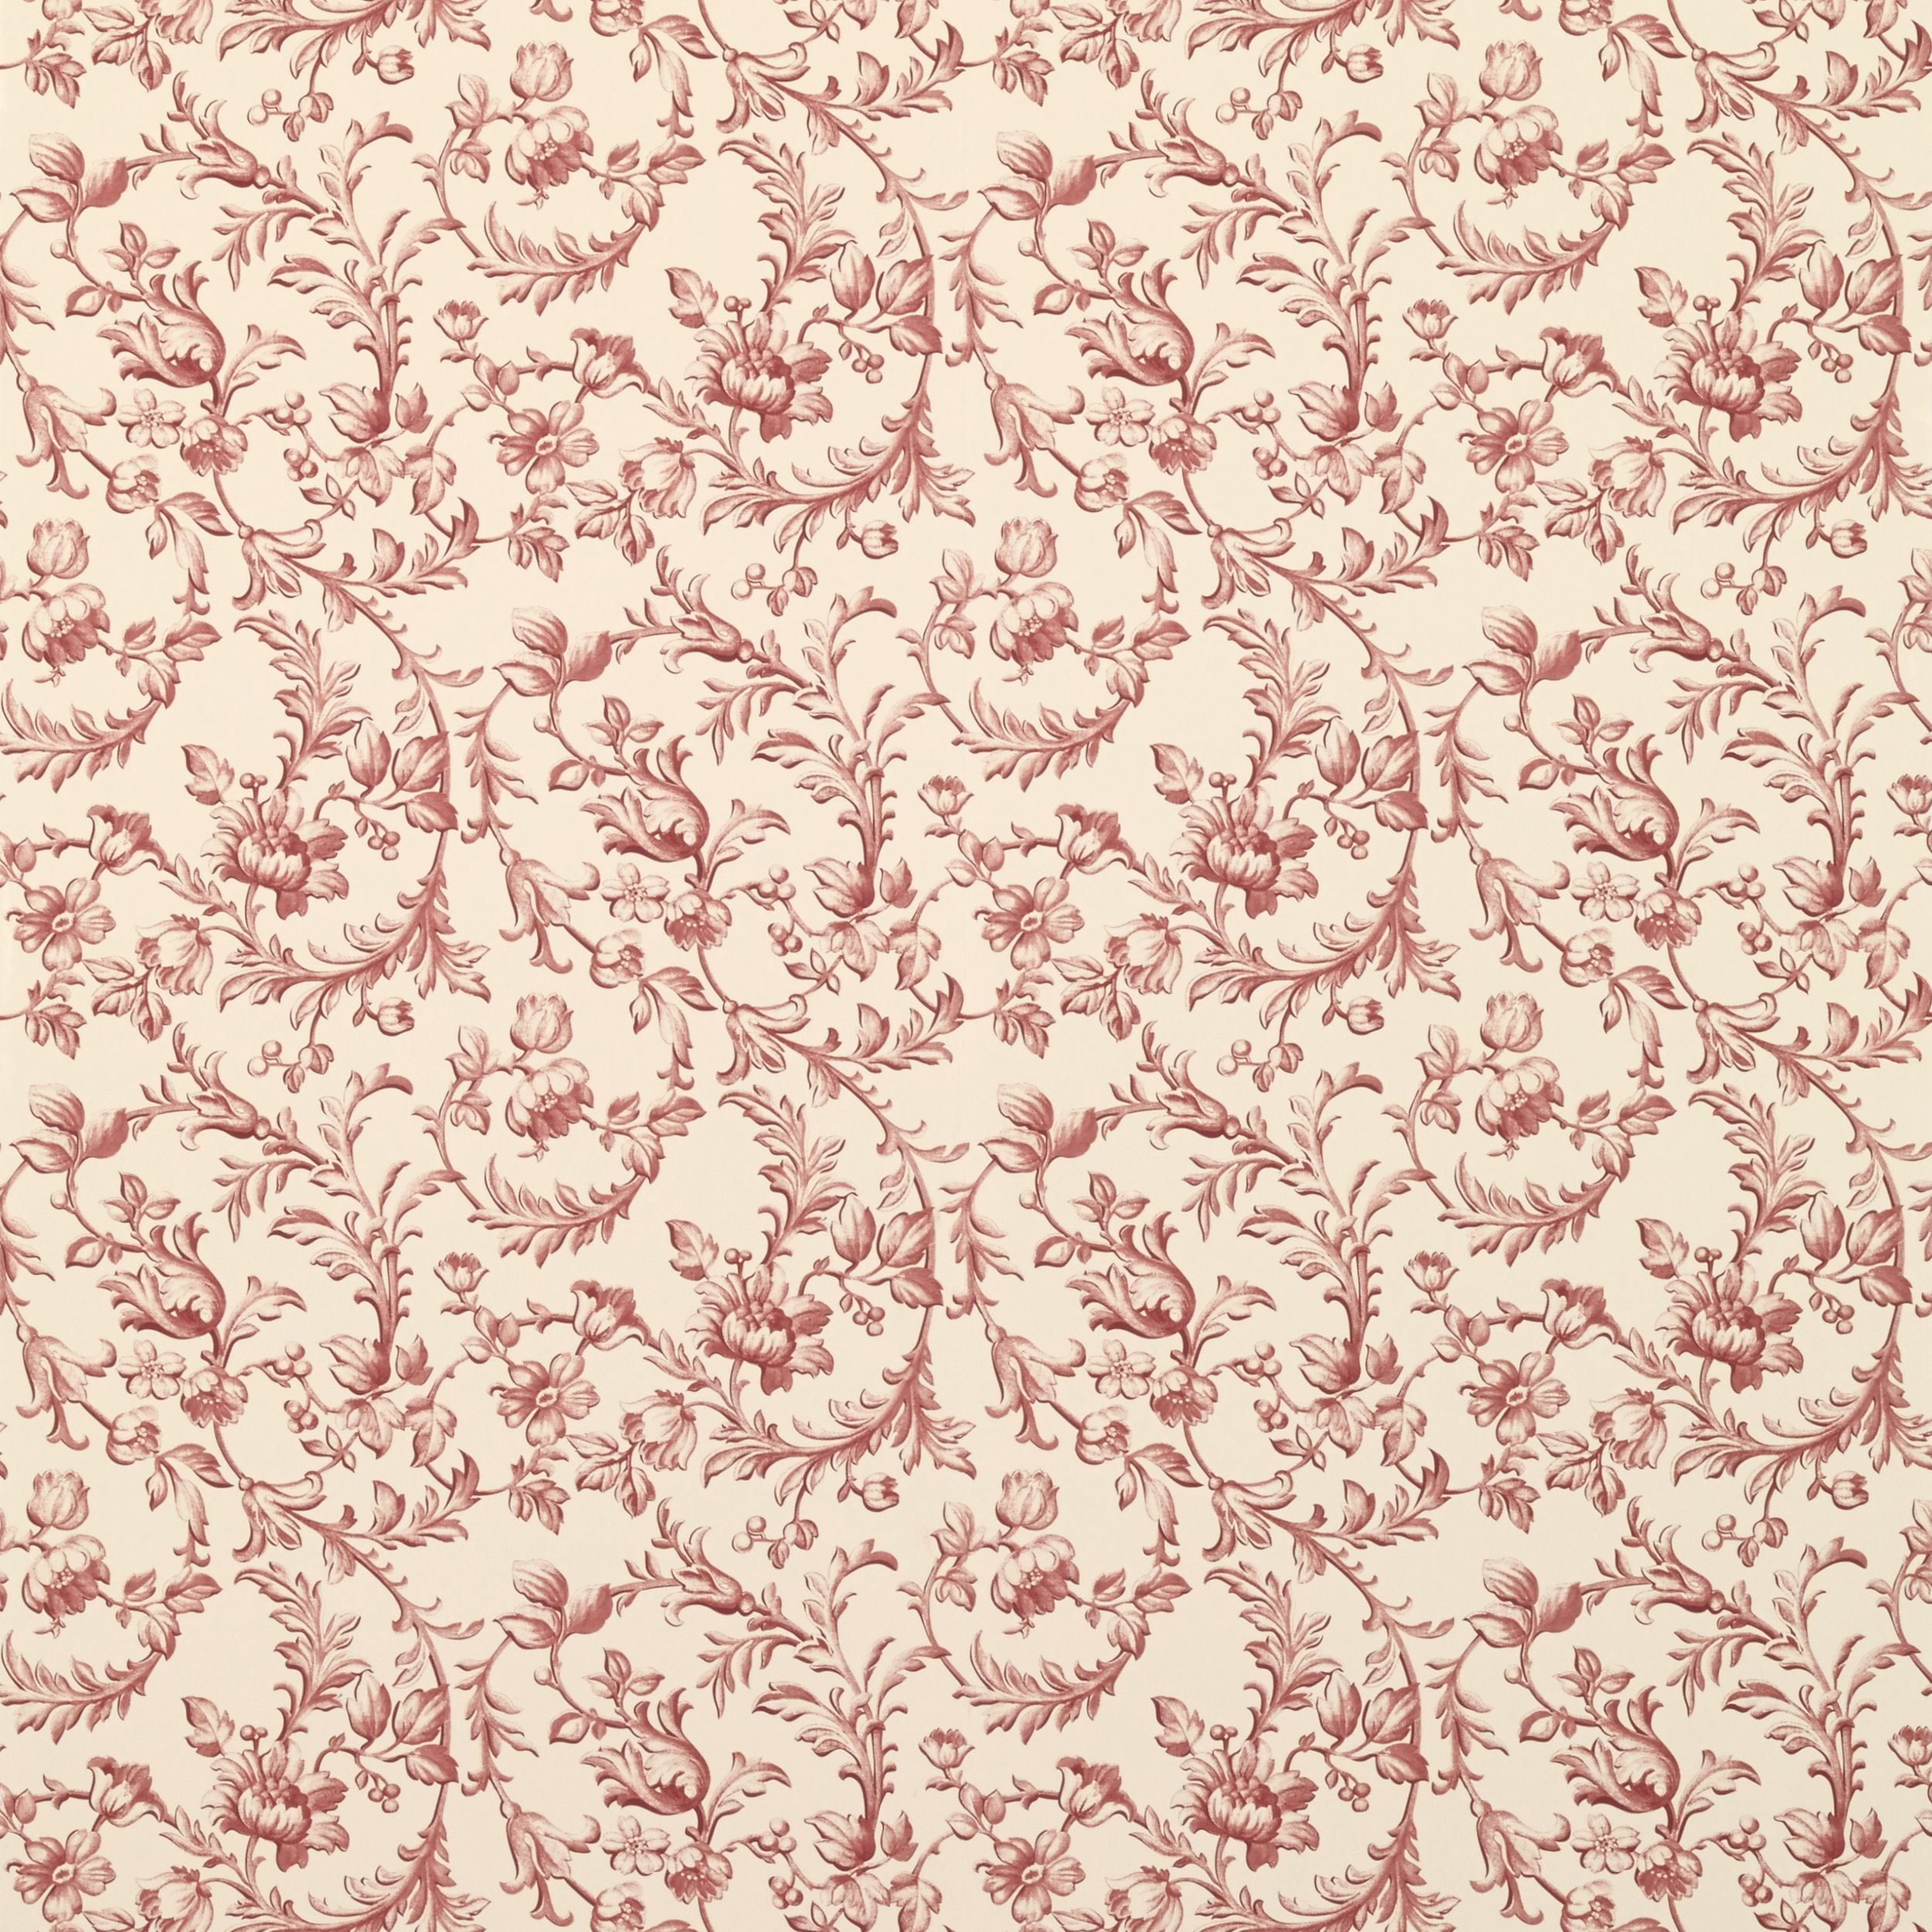 Ironwork Scroll Cranberry Wallpaper at LAURA ASHLEY / Ironwork Scroll Cranberry Cotton Fabric - Heritage Collection